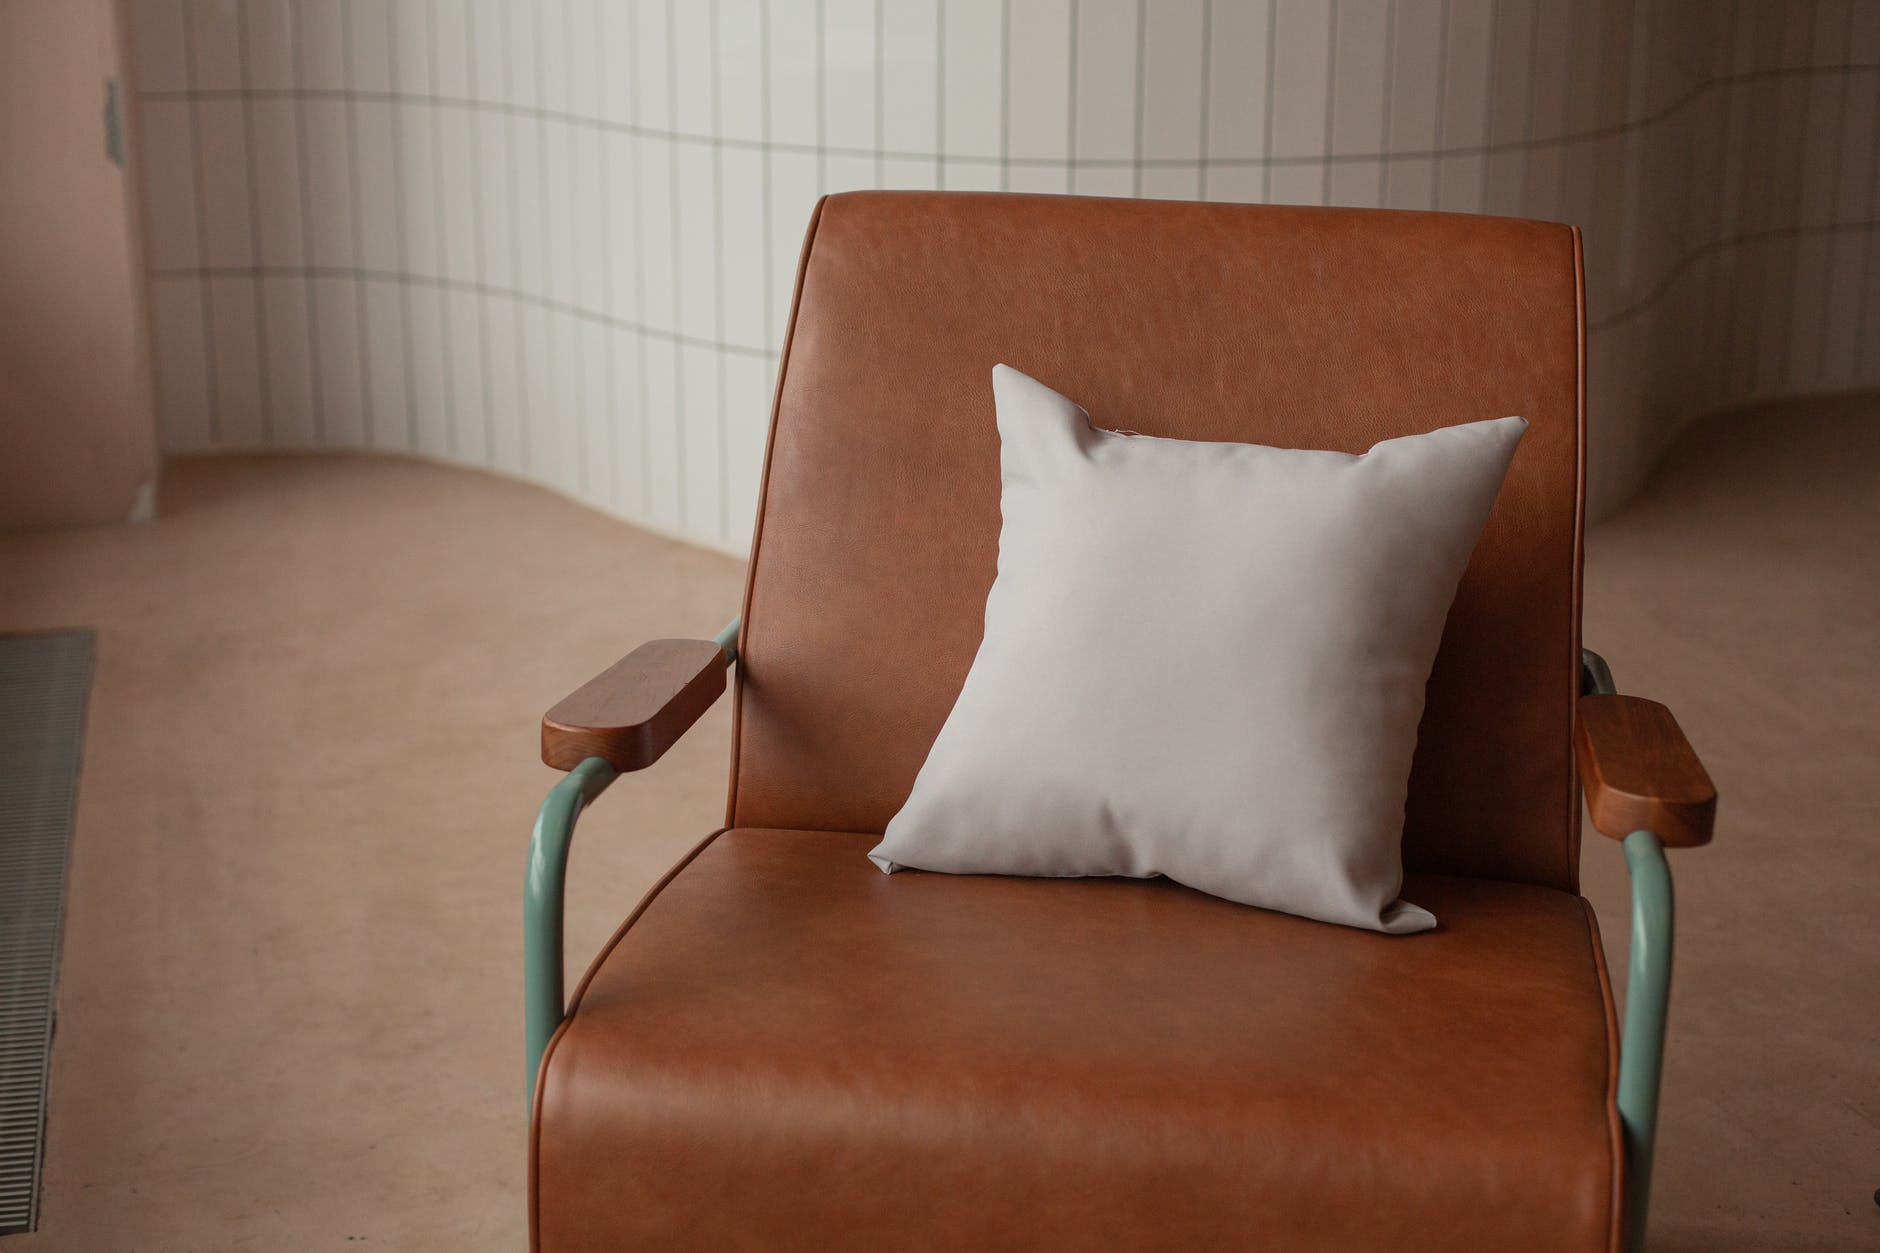 Brown leather chair with pillow.